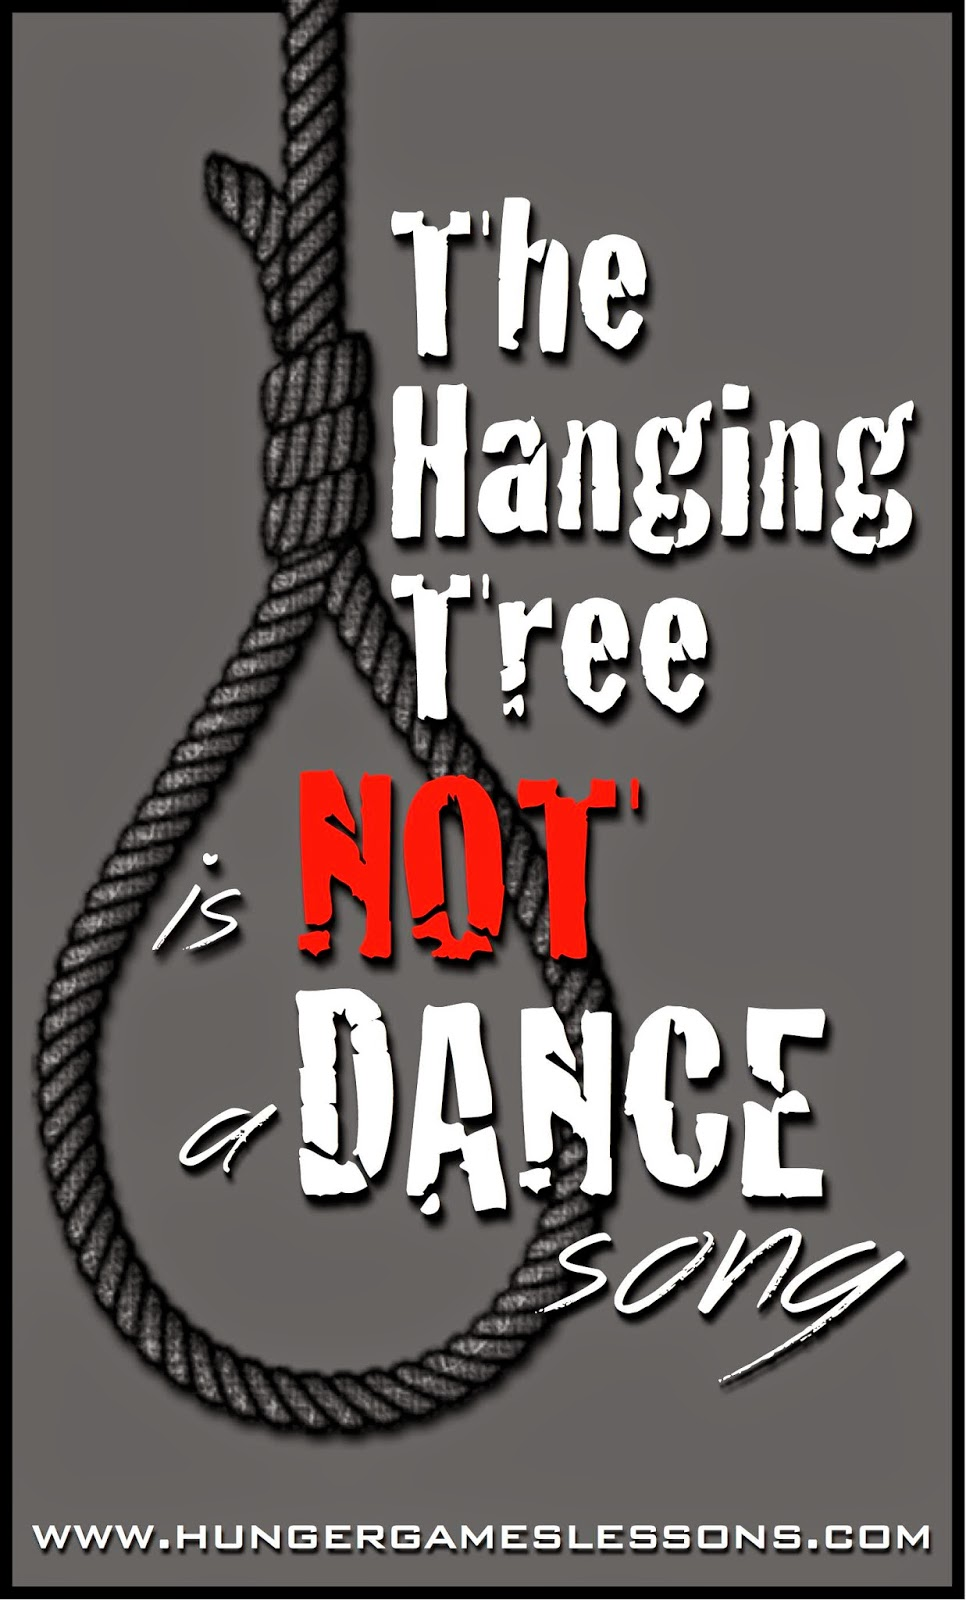 """The Hanging Tree"" is NOT a dance song - www.hungergameslessons.com"